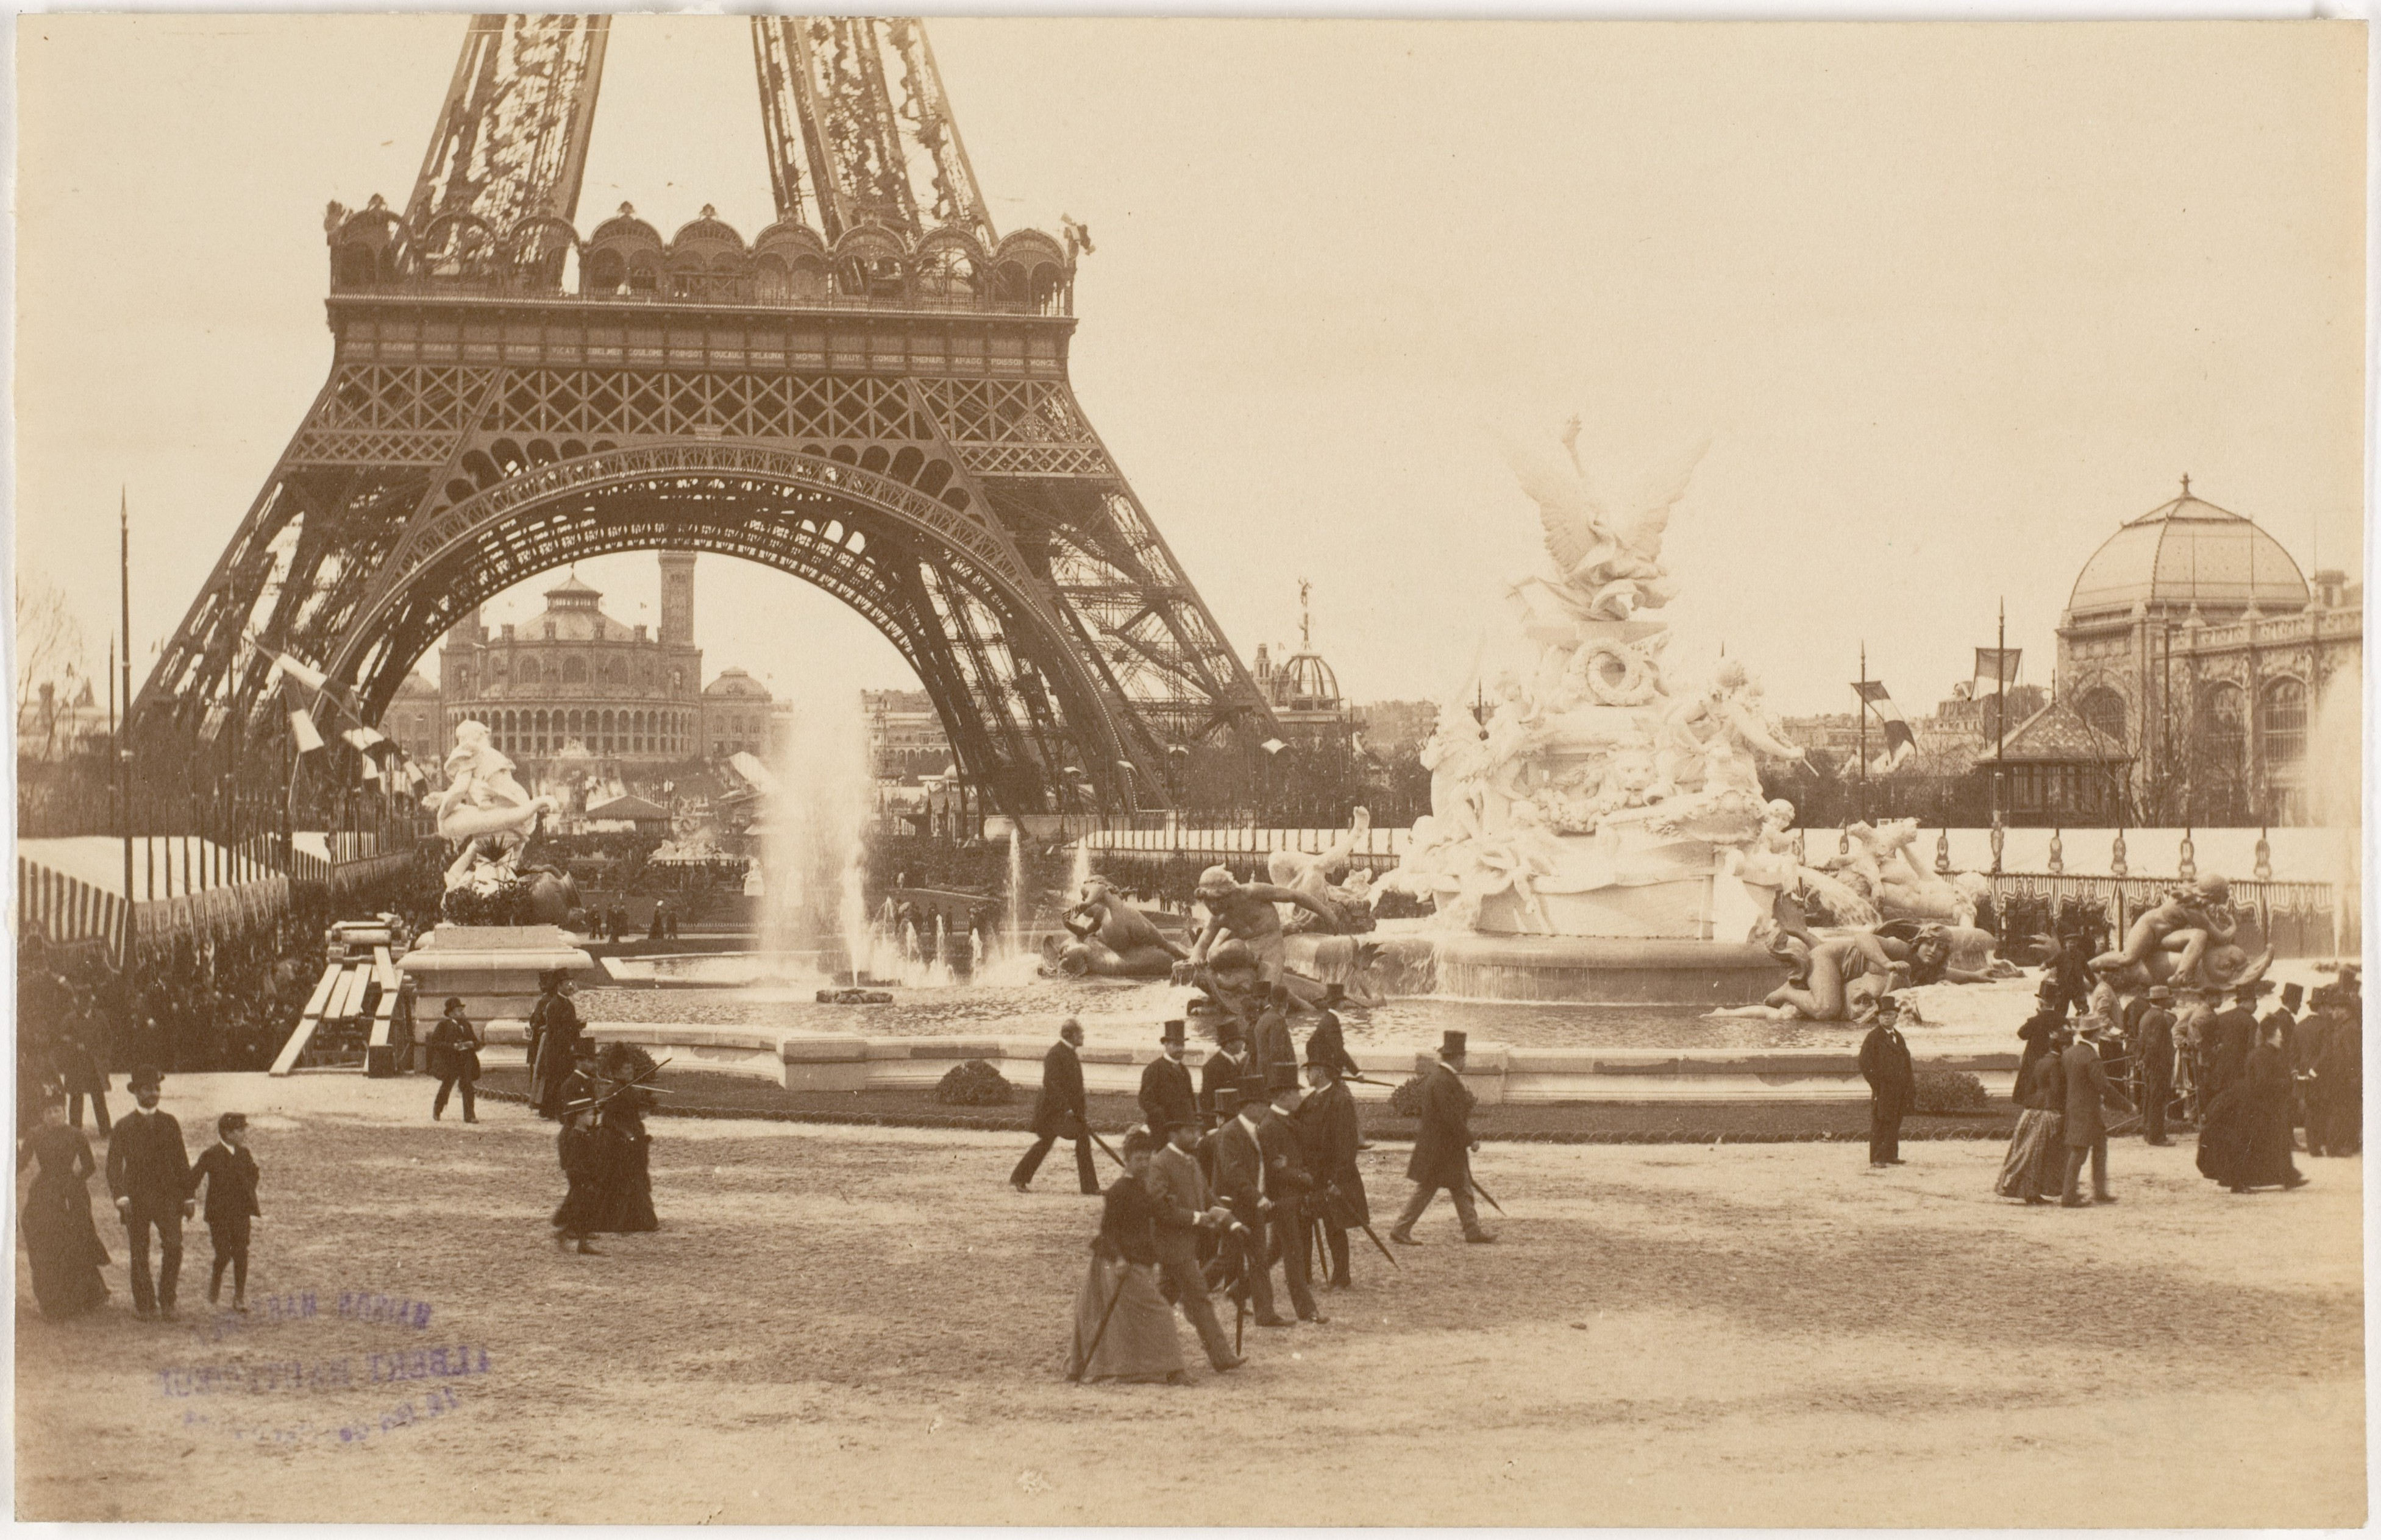 the history of paris Paris: paris, city and capital of france, located in the north-central part of the country located along the seine river, paris is one of the world's most important and attractive cities.